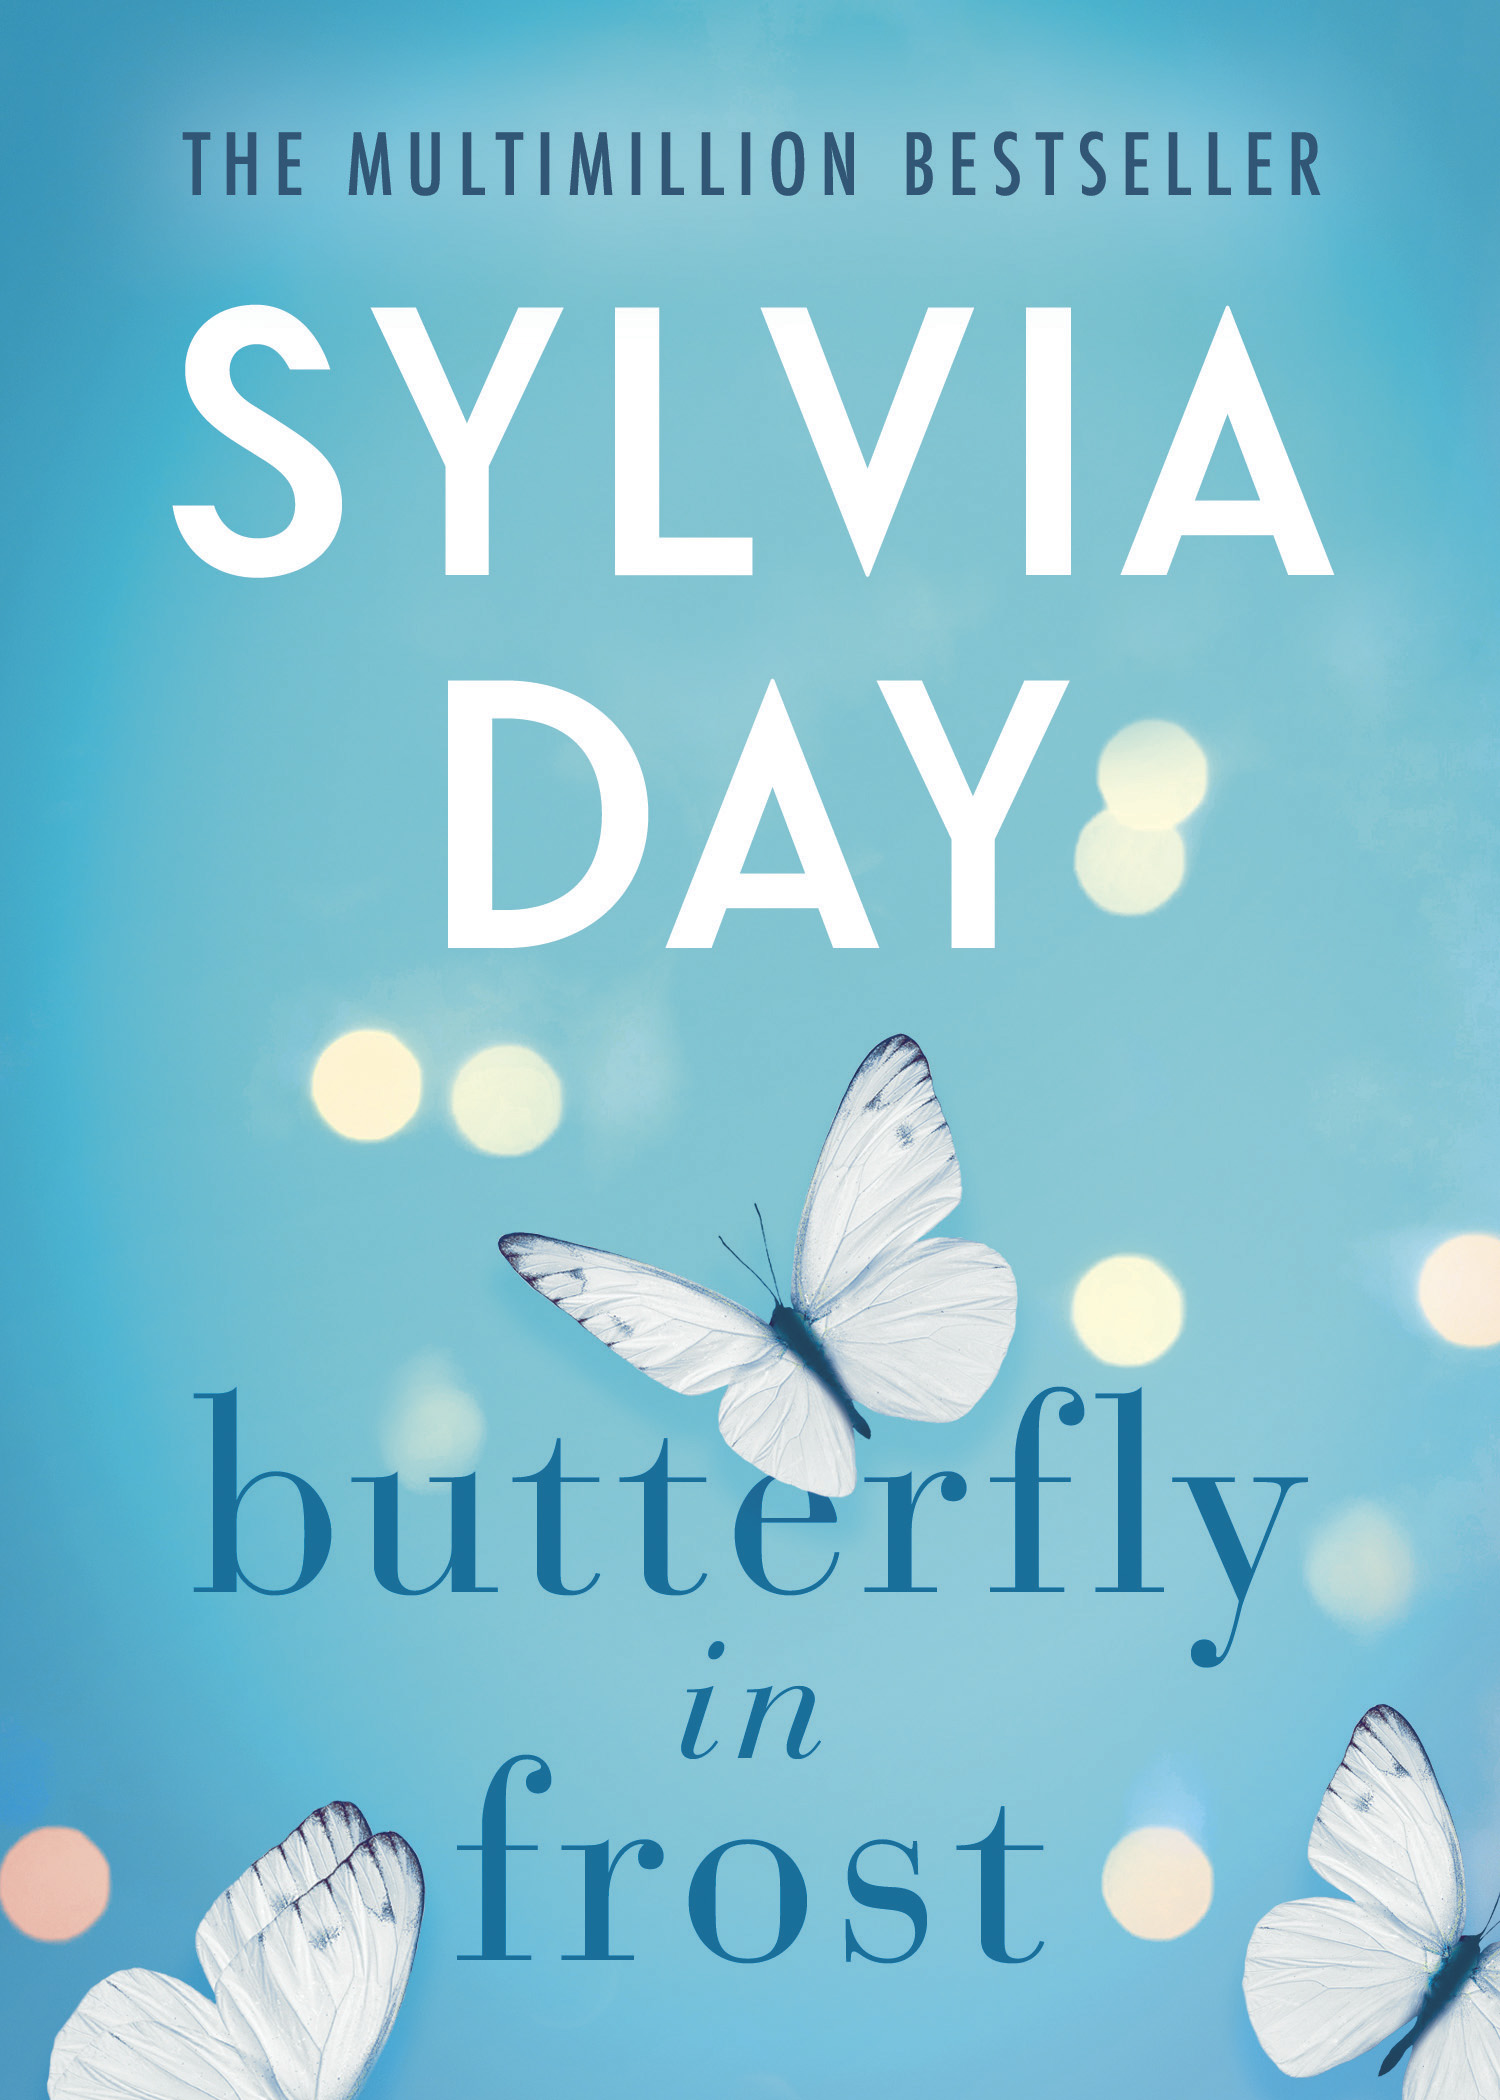 Butterfly in Frost by Sylvia Day is LIVE